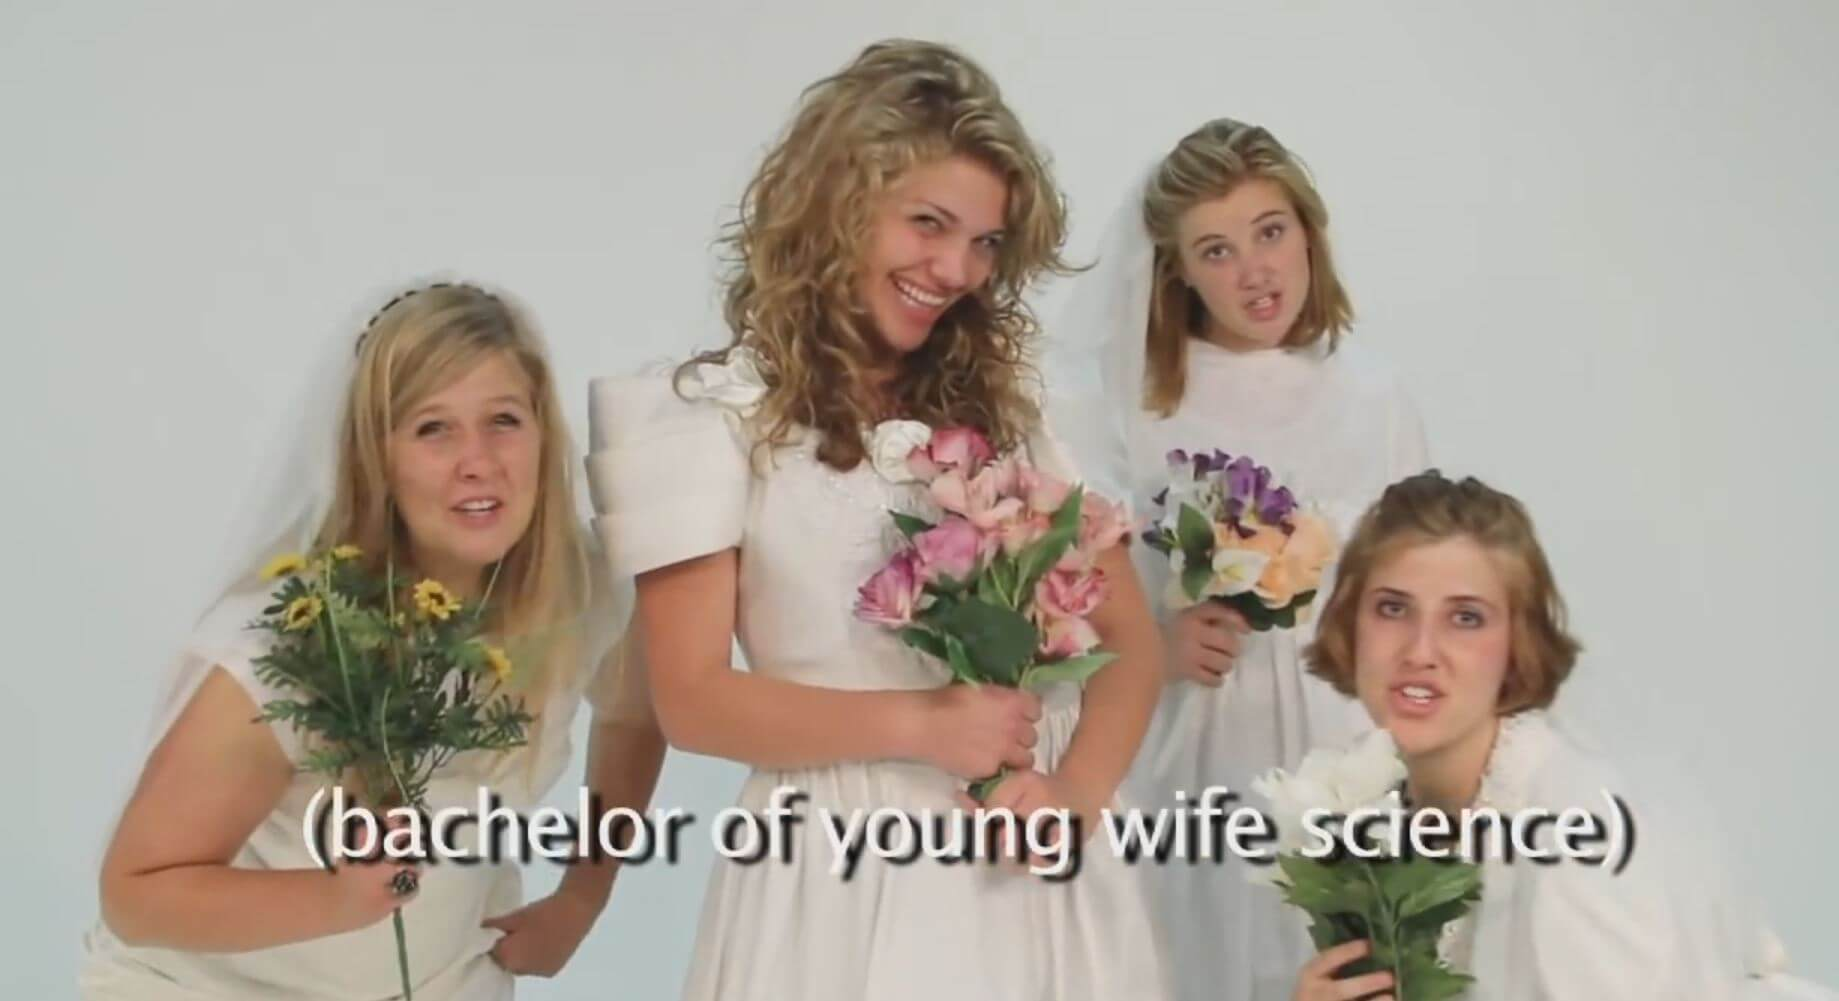 Provo, Utah Girls parody (video)